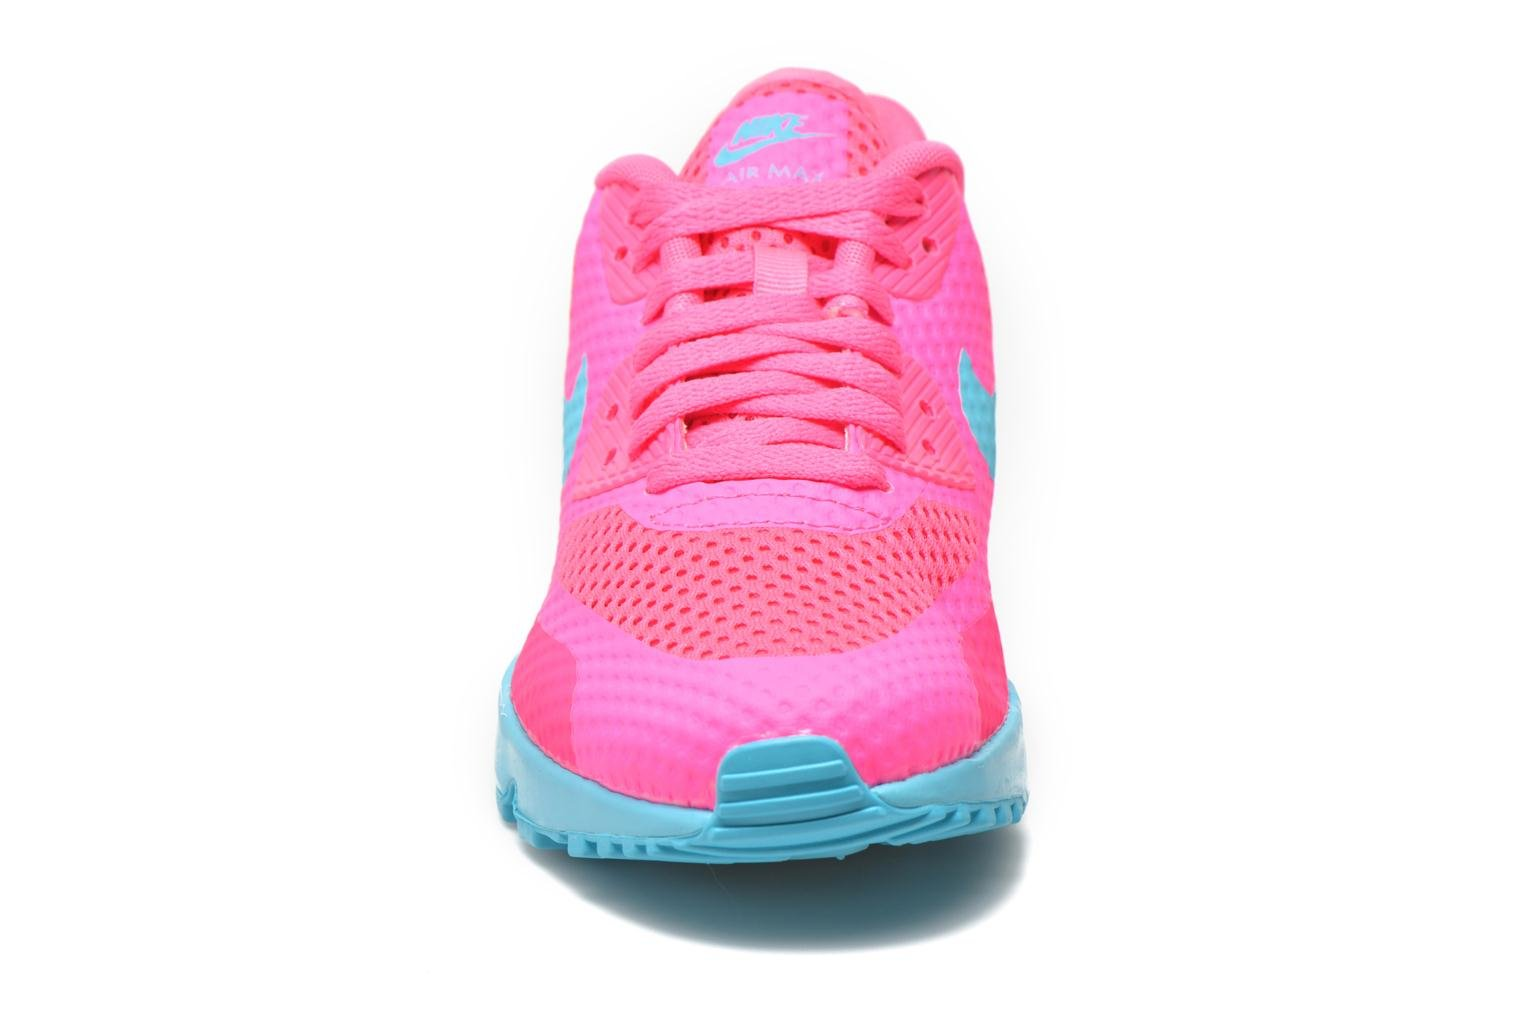 Nike Air Max 90 Br (Gs) Pink Blast Gamma Blue-Black